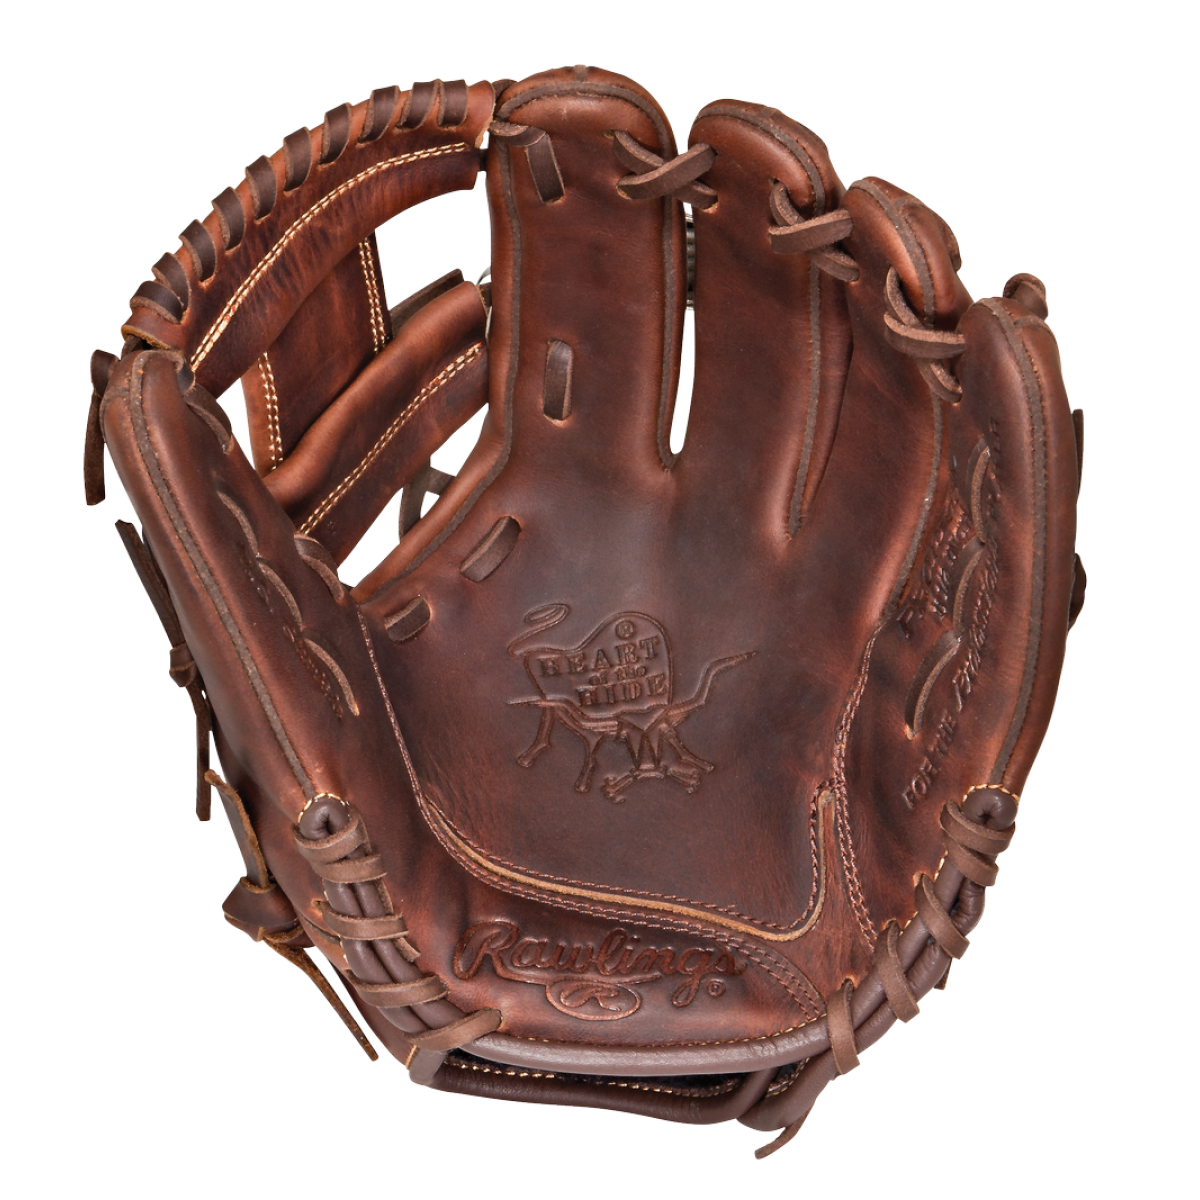 Gloves clipart catcher mitt, Gloves catcher mitt Transparent.